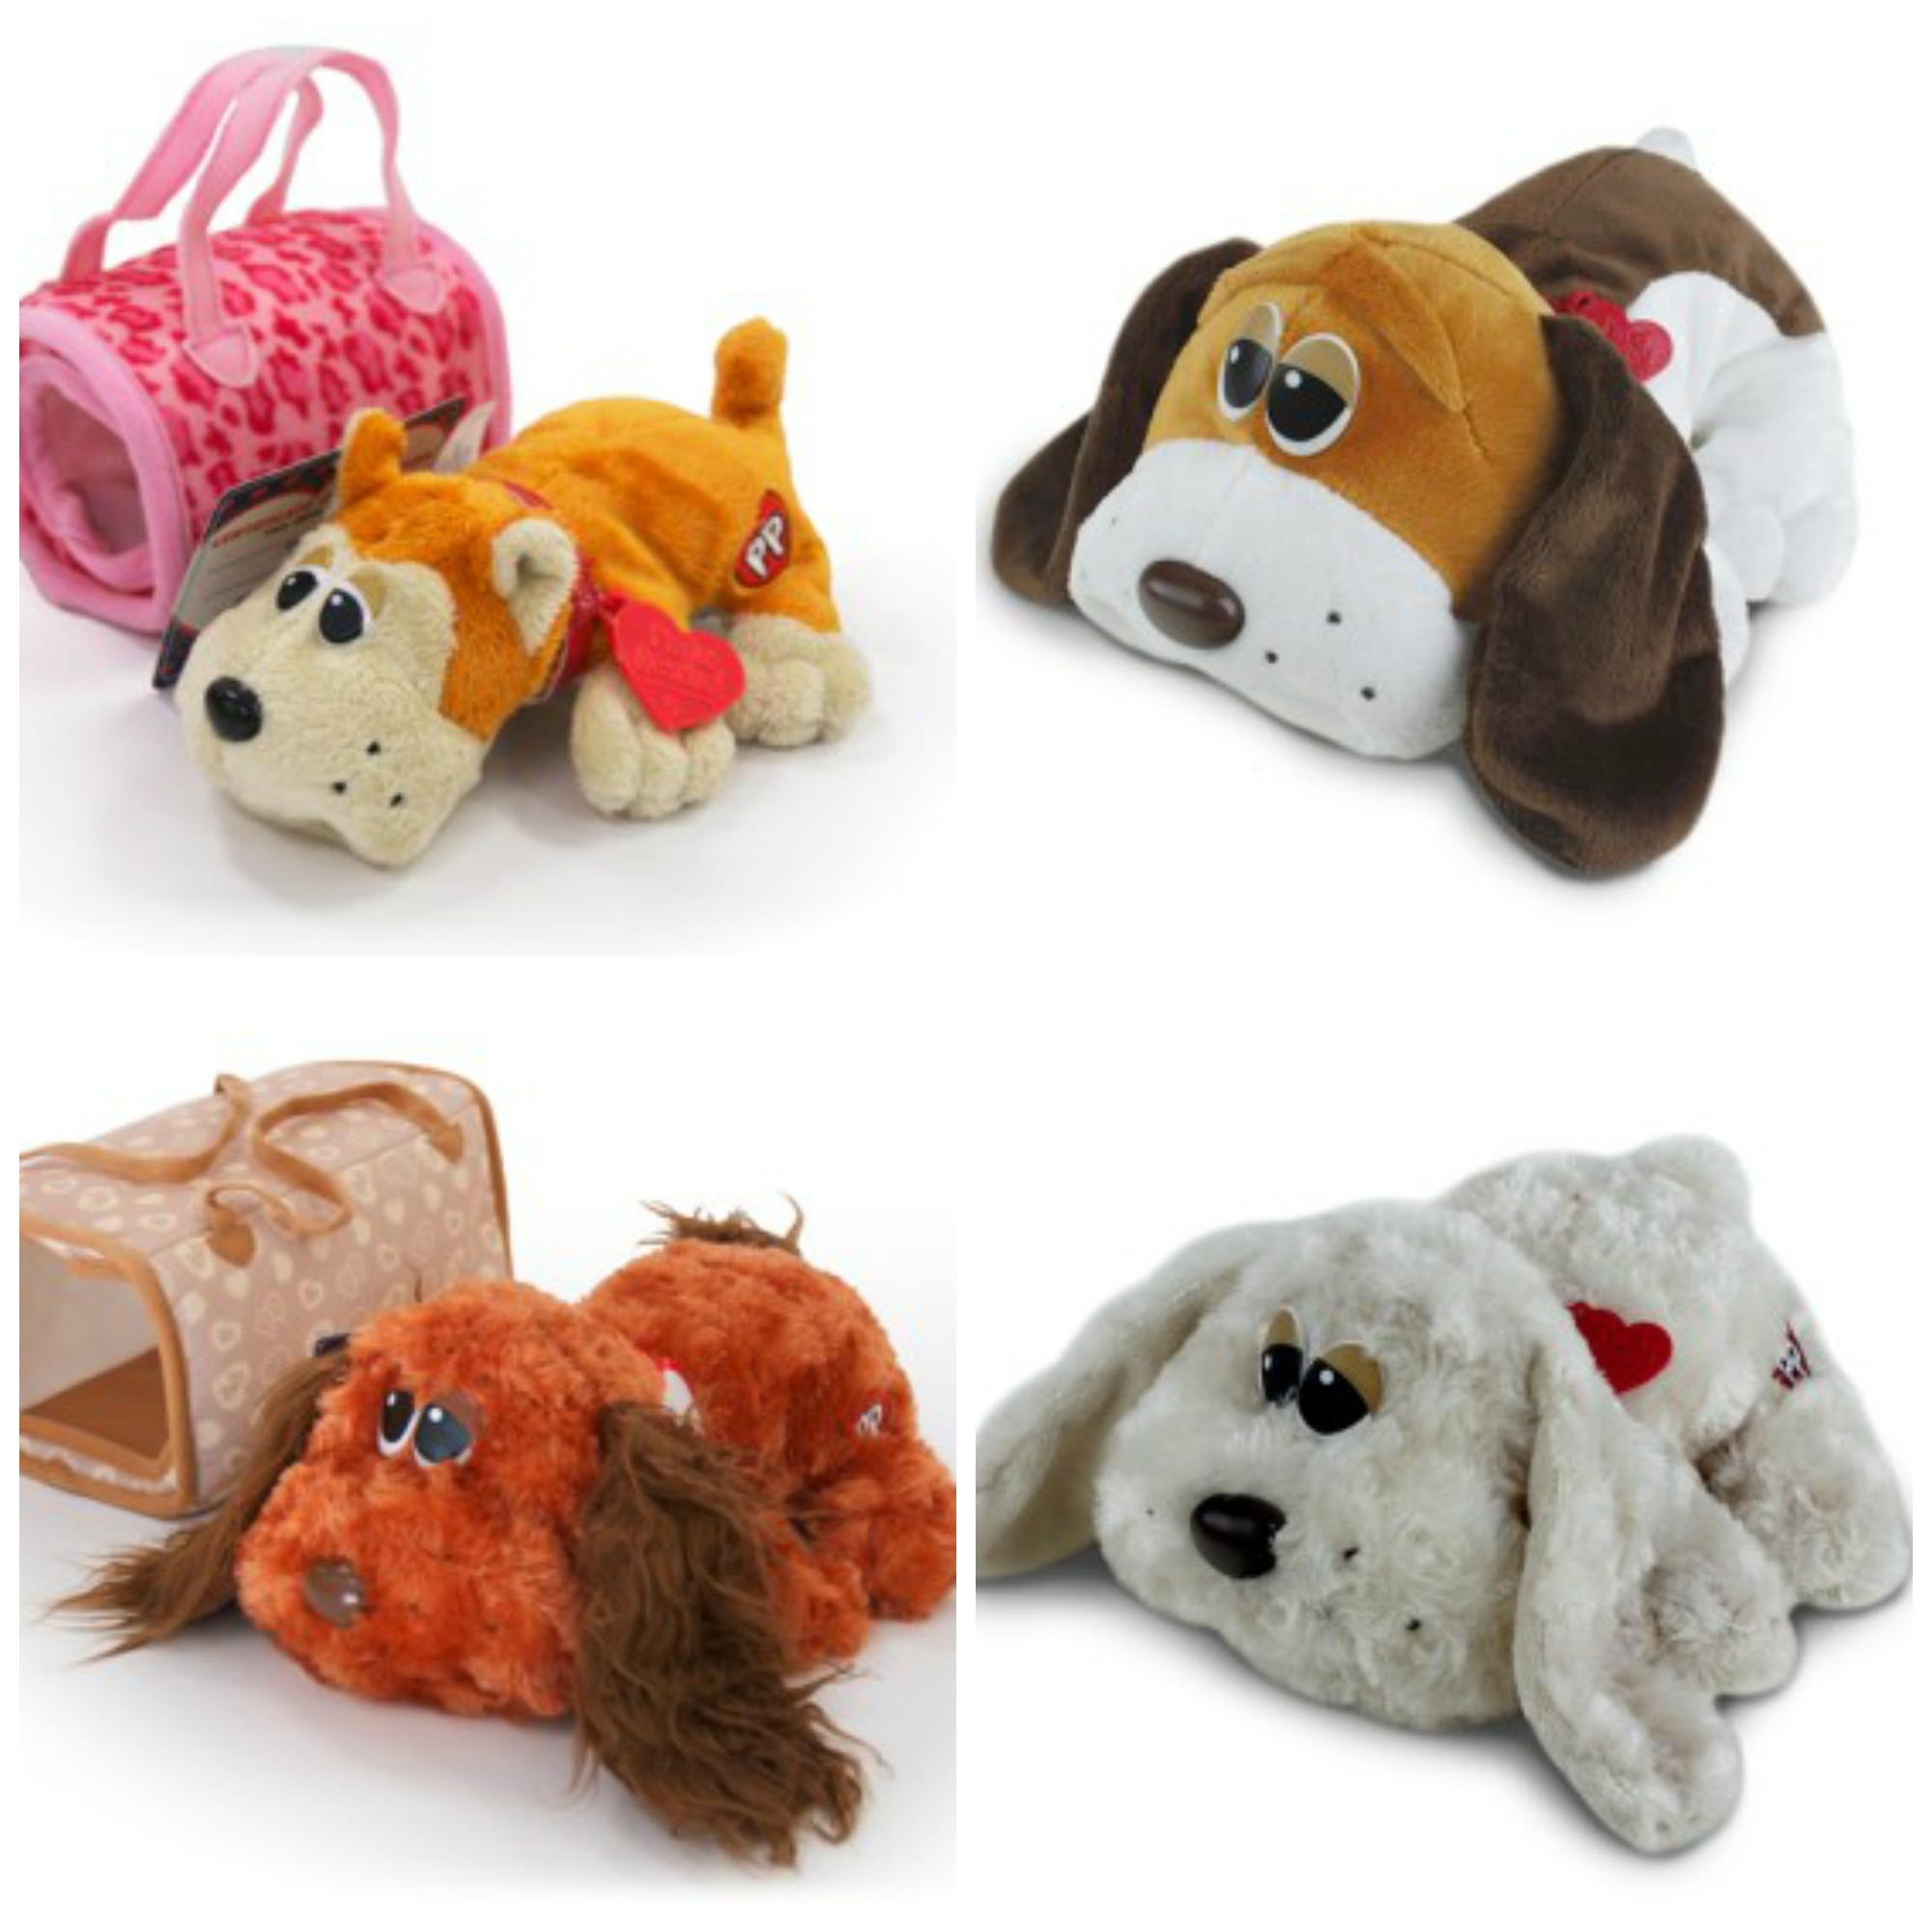 BragWorthy Christmas Pound Puppies from Funrise are back